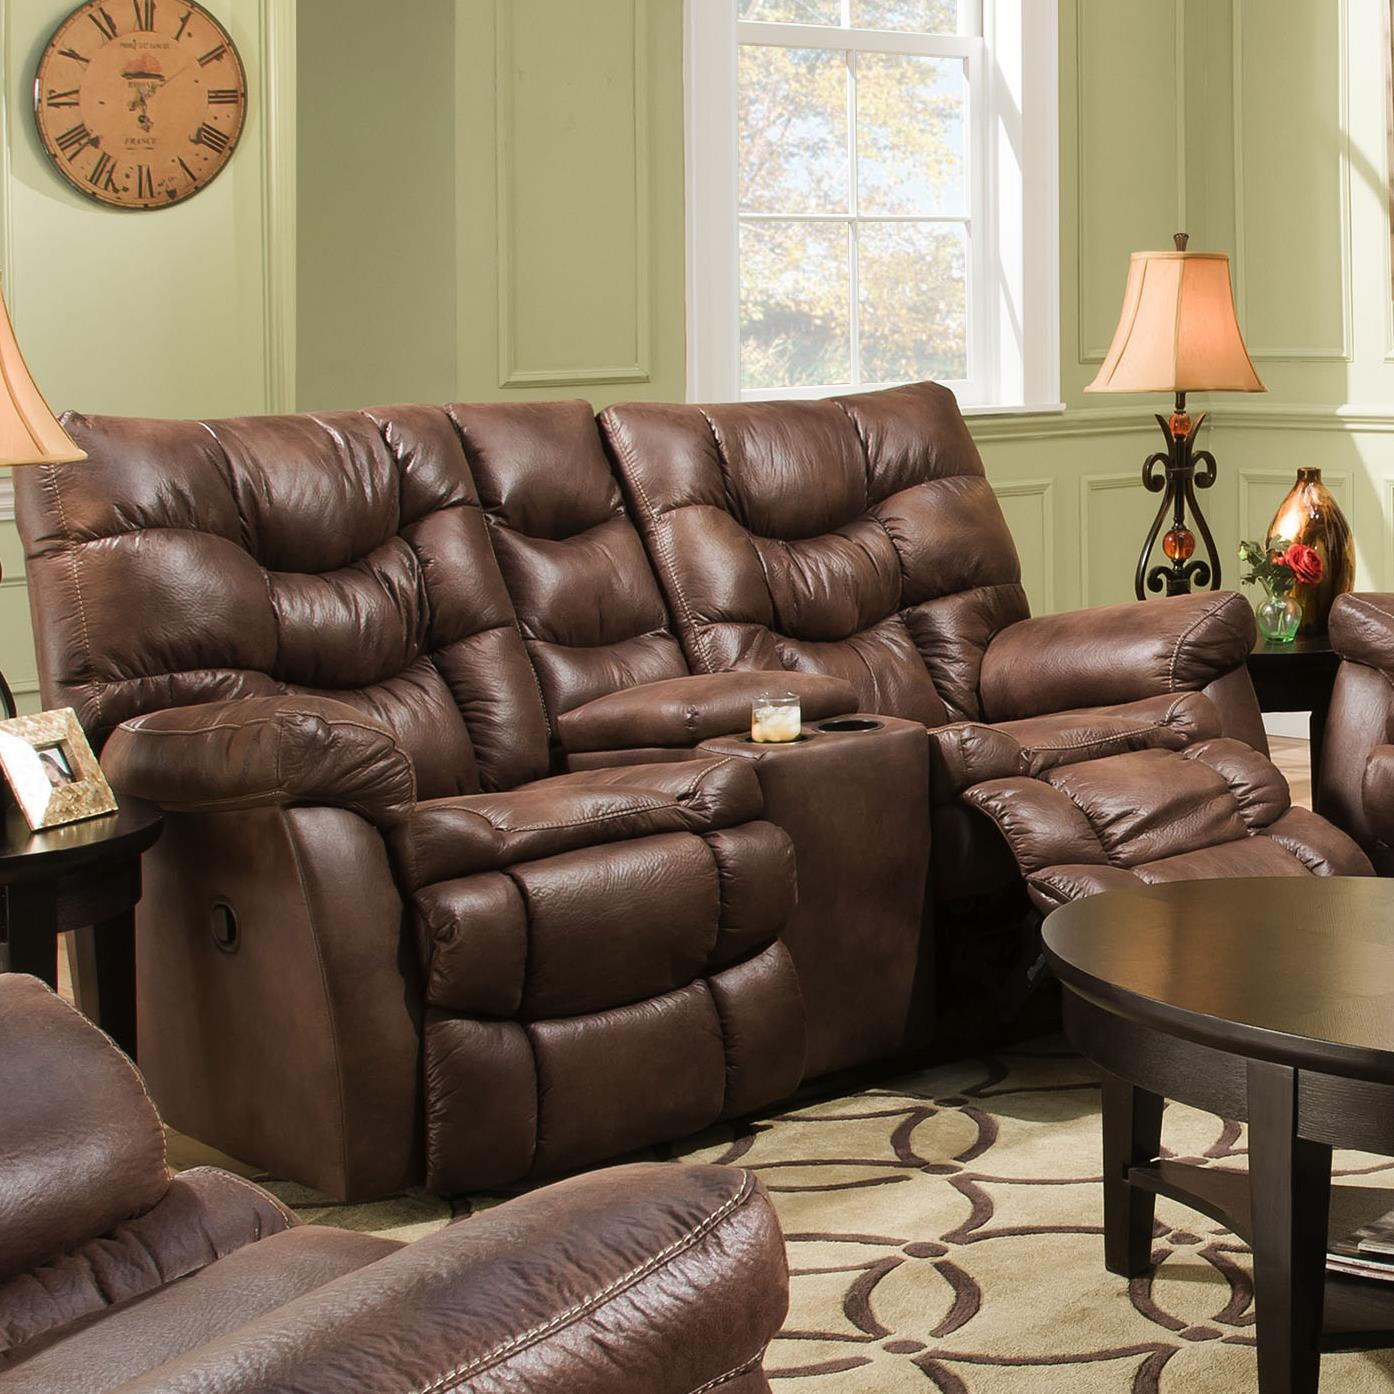 HomeStretch 130 Casual Reclining Love Seat - Item Number: 130-22-21